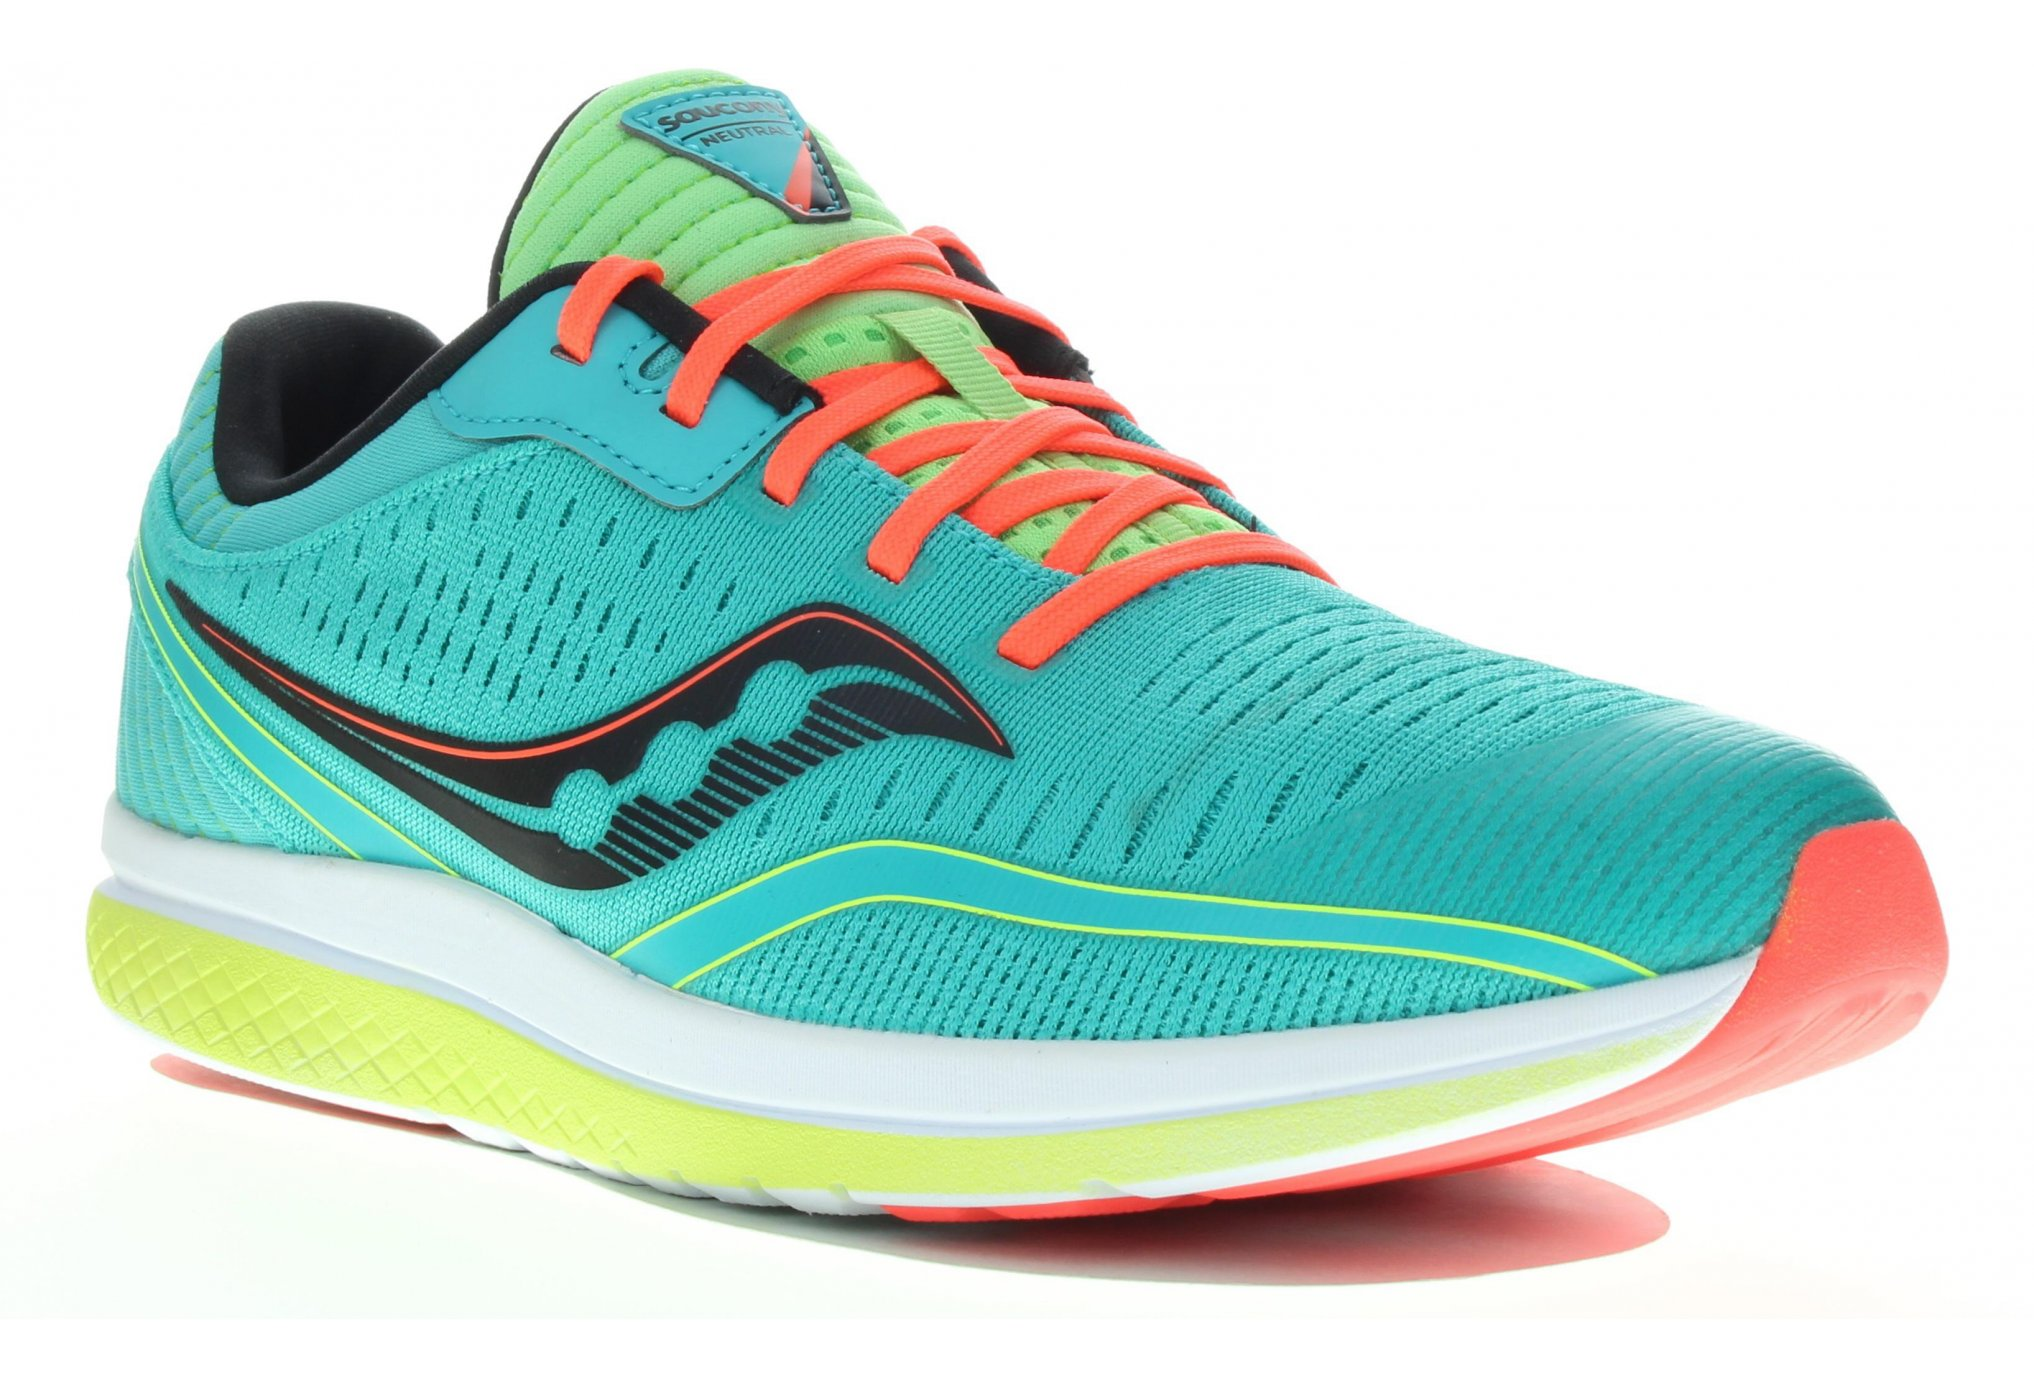 Saucony Kinvara 11 Fille Chaussures running femme